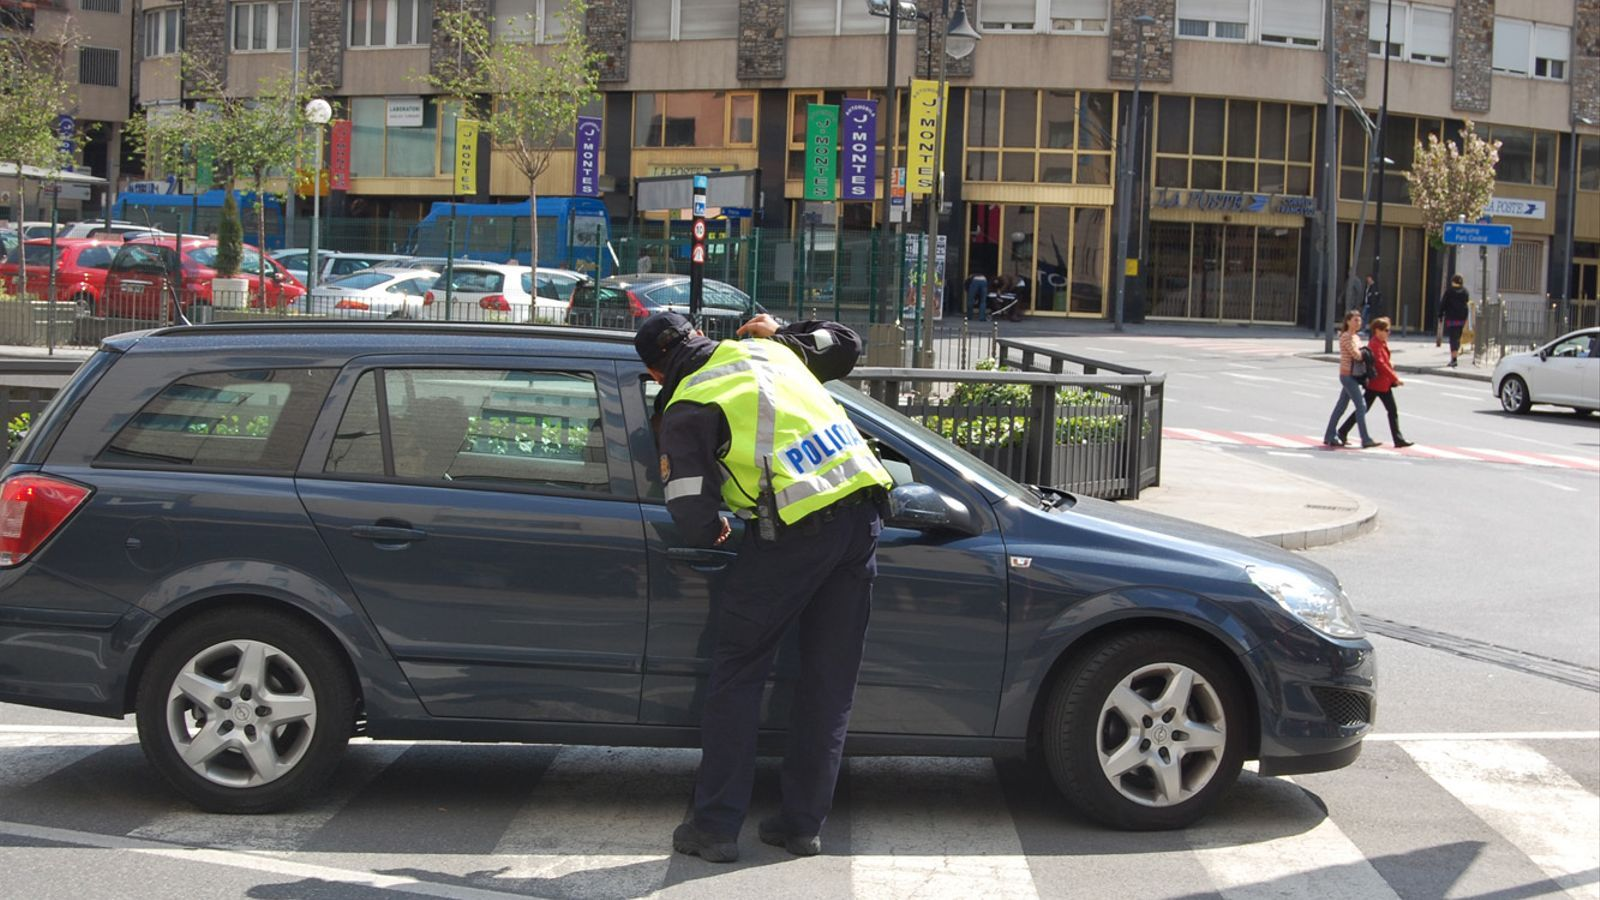 Un agent interpel·la el conductor d'un vehicle a Andorra la Vella